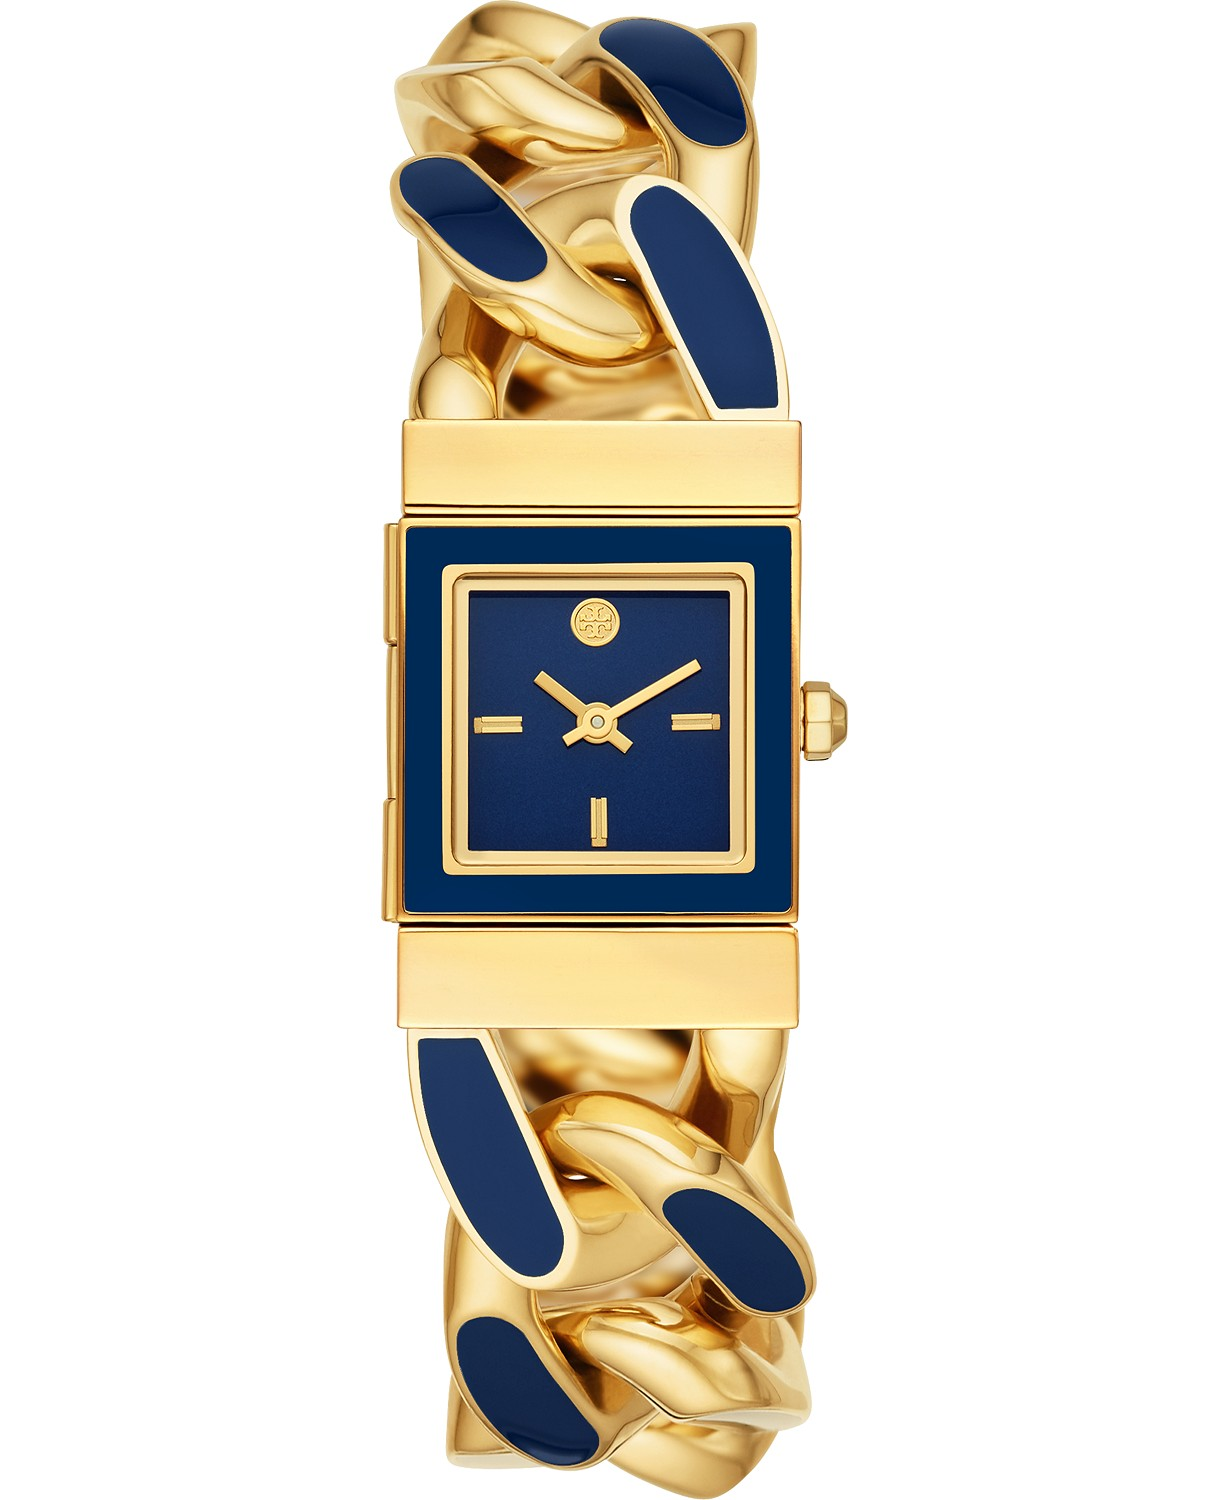 Tory Burch Women's Tilda Blue & Gold-Tone Stainless Steel Bracelet Watch $197.50 (50% off)